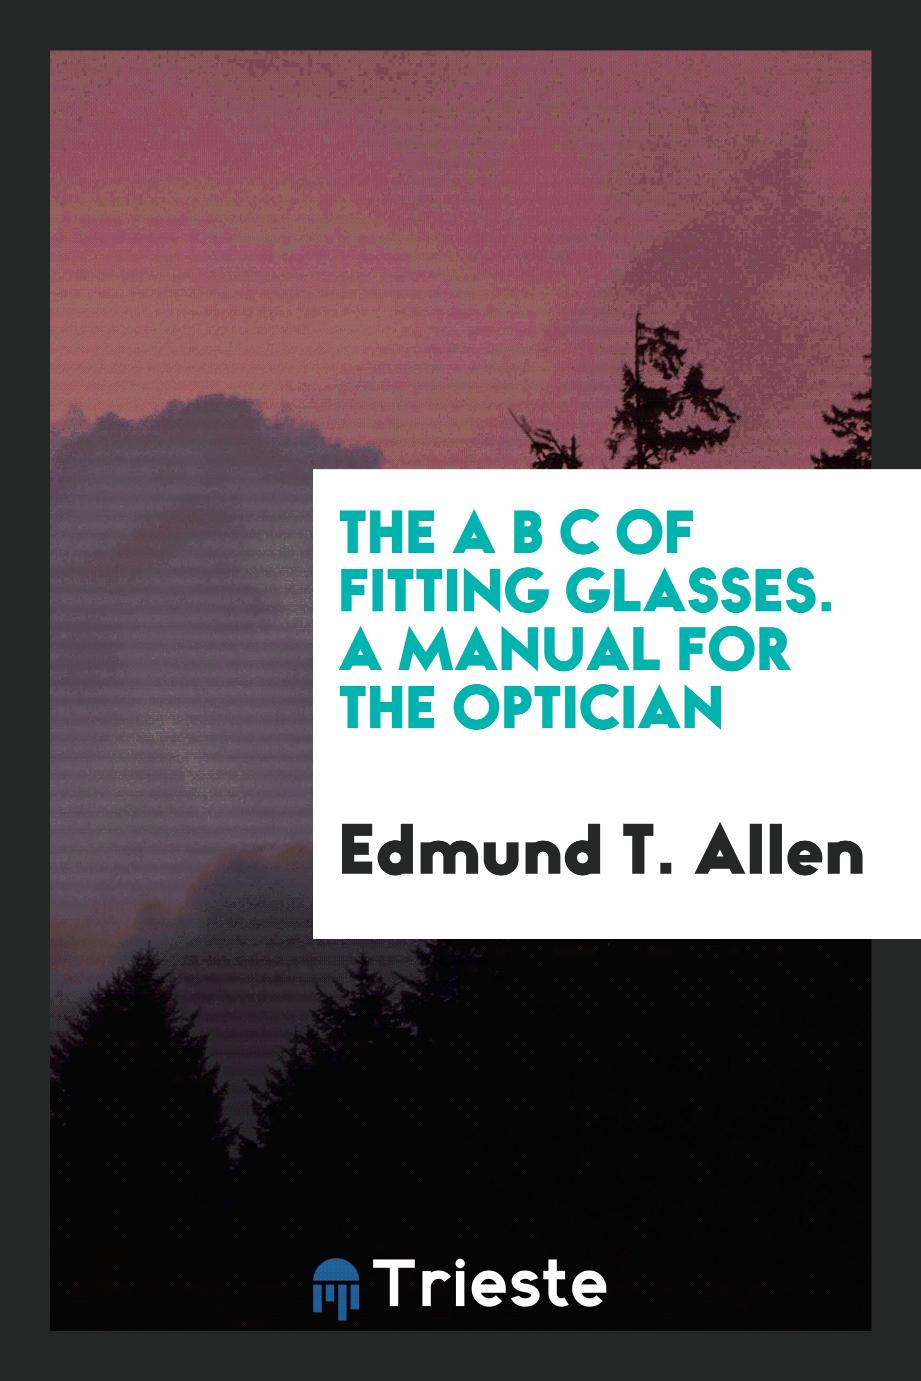 The A B C of Fitting Glasses. A Manual for the Optician